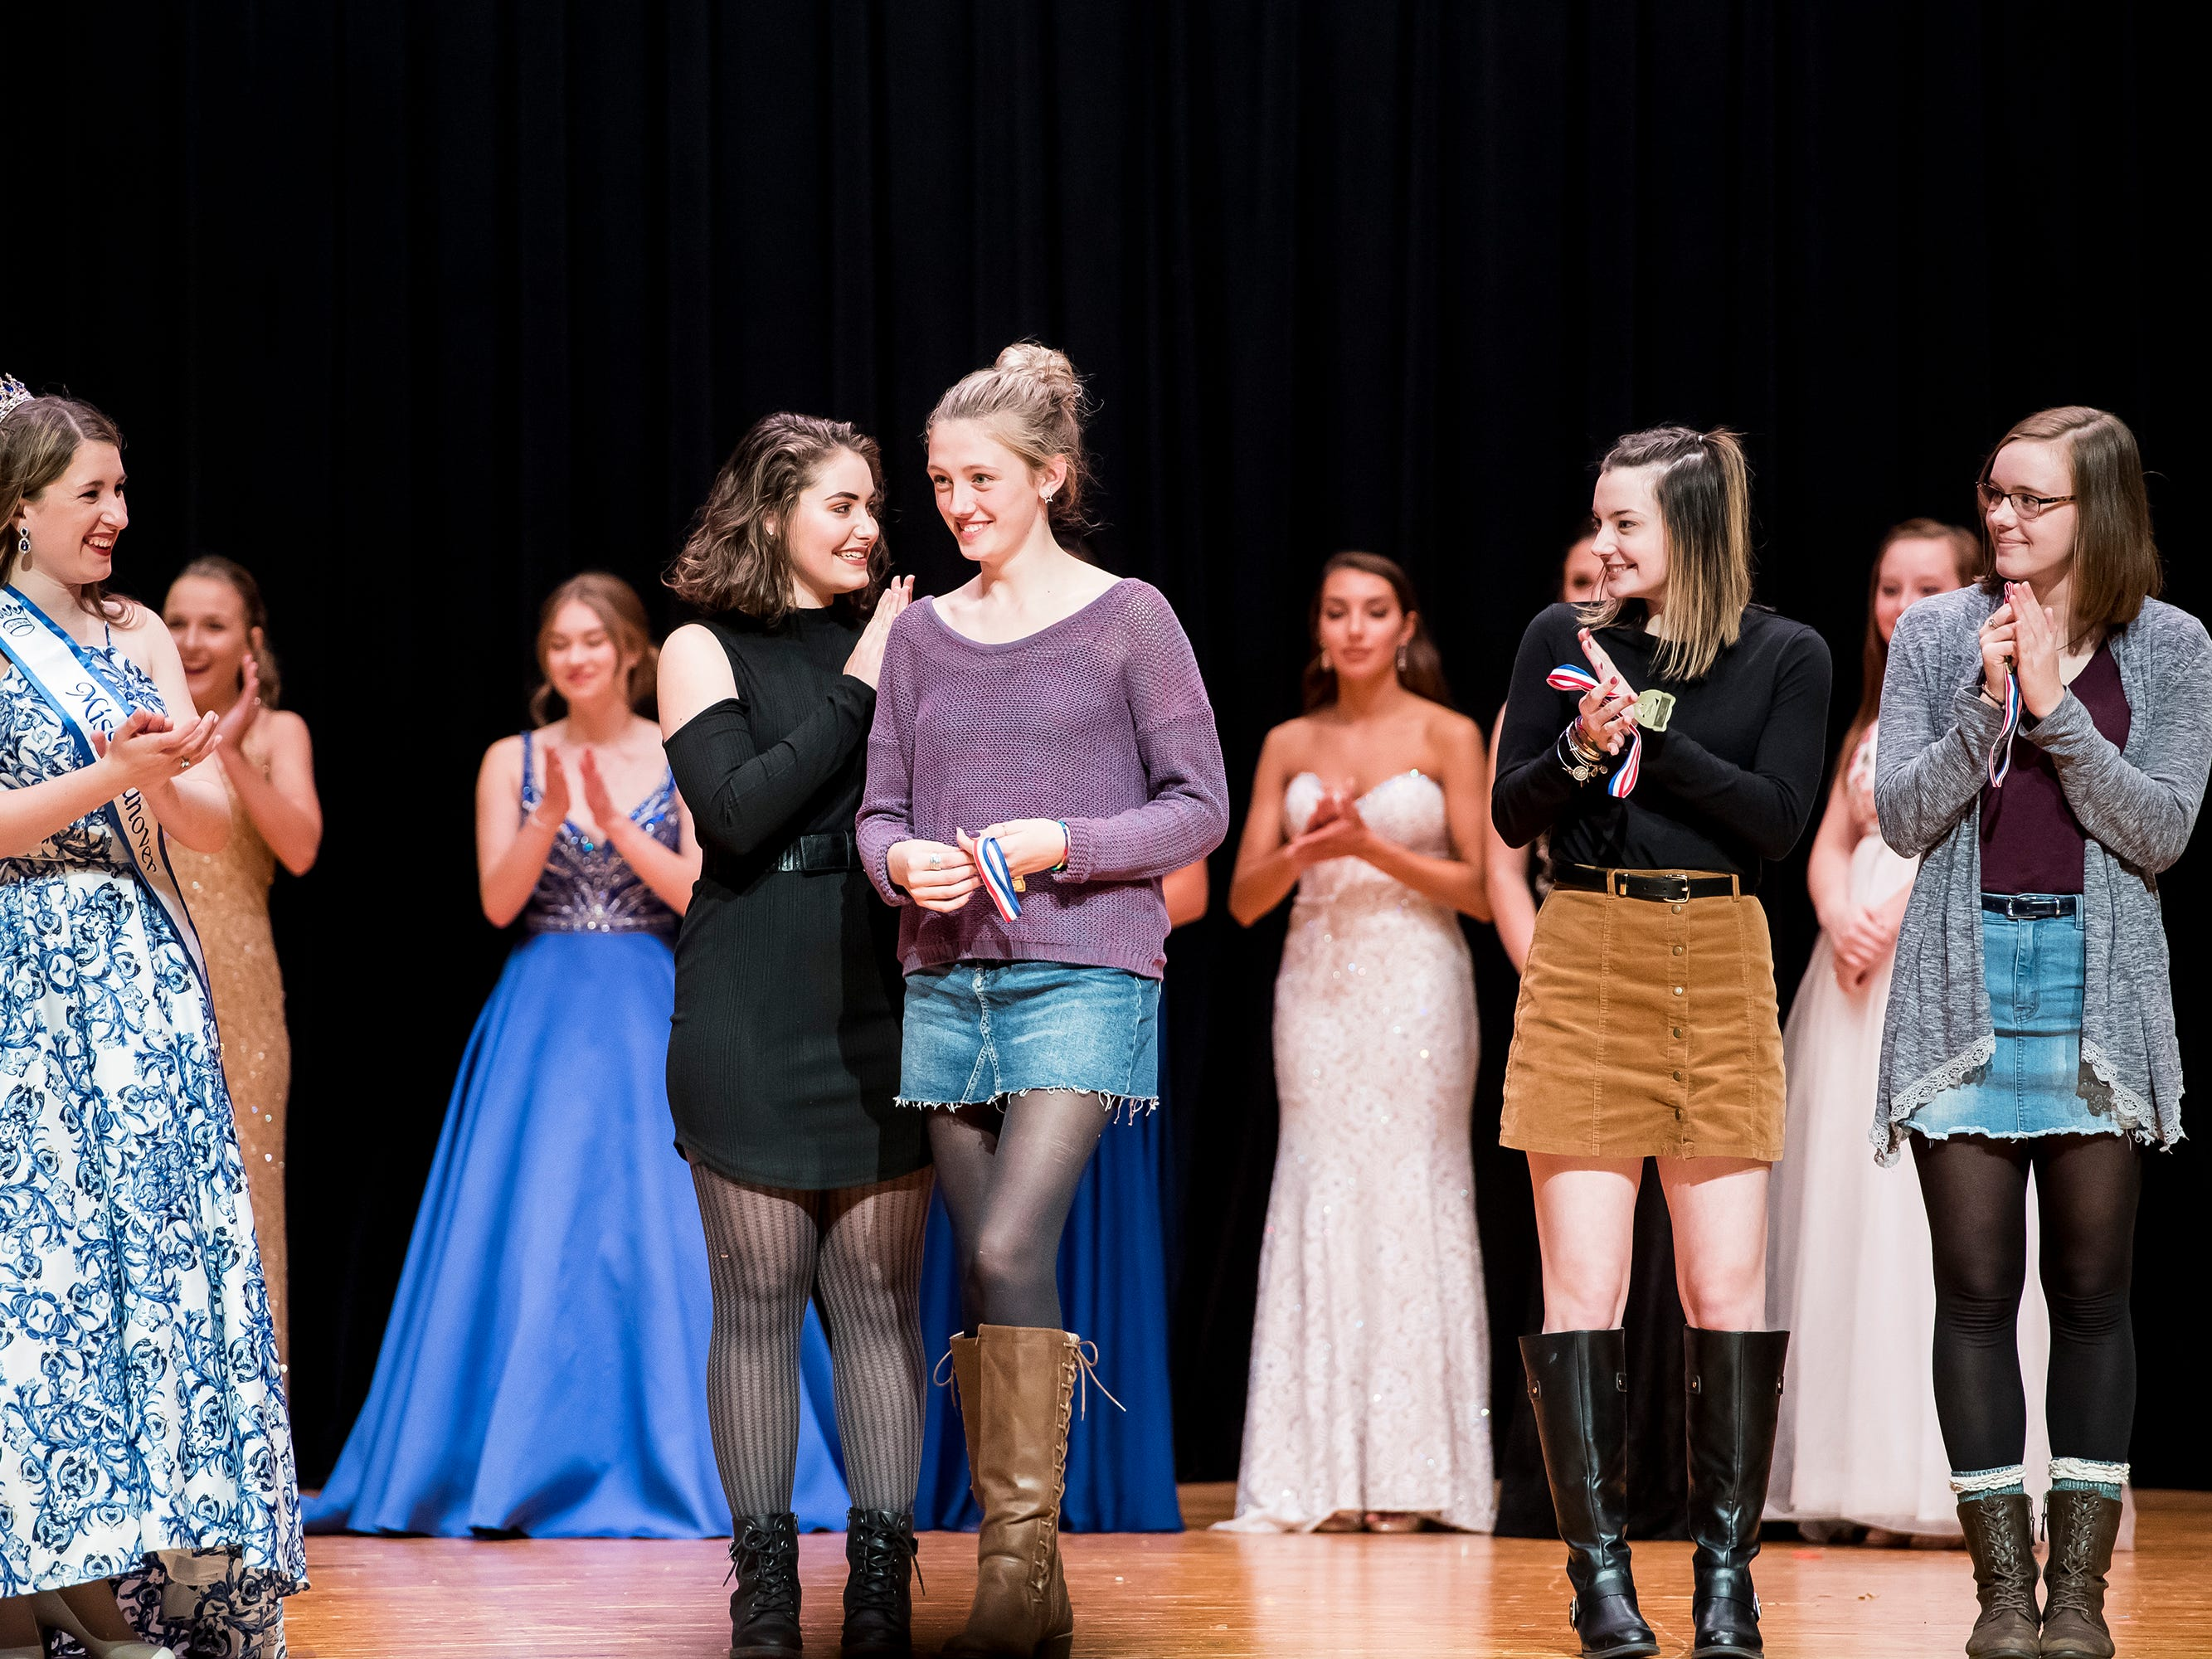 Anna Holden, third from left, reacts a she is named the winner of the junior essay award at the 50th Miss Hanover Area pageant on Monday, October 22, 2018 at New Oxford High School.